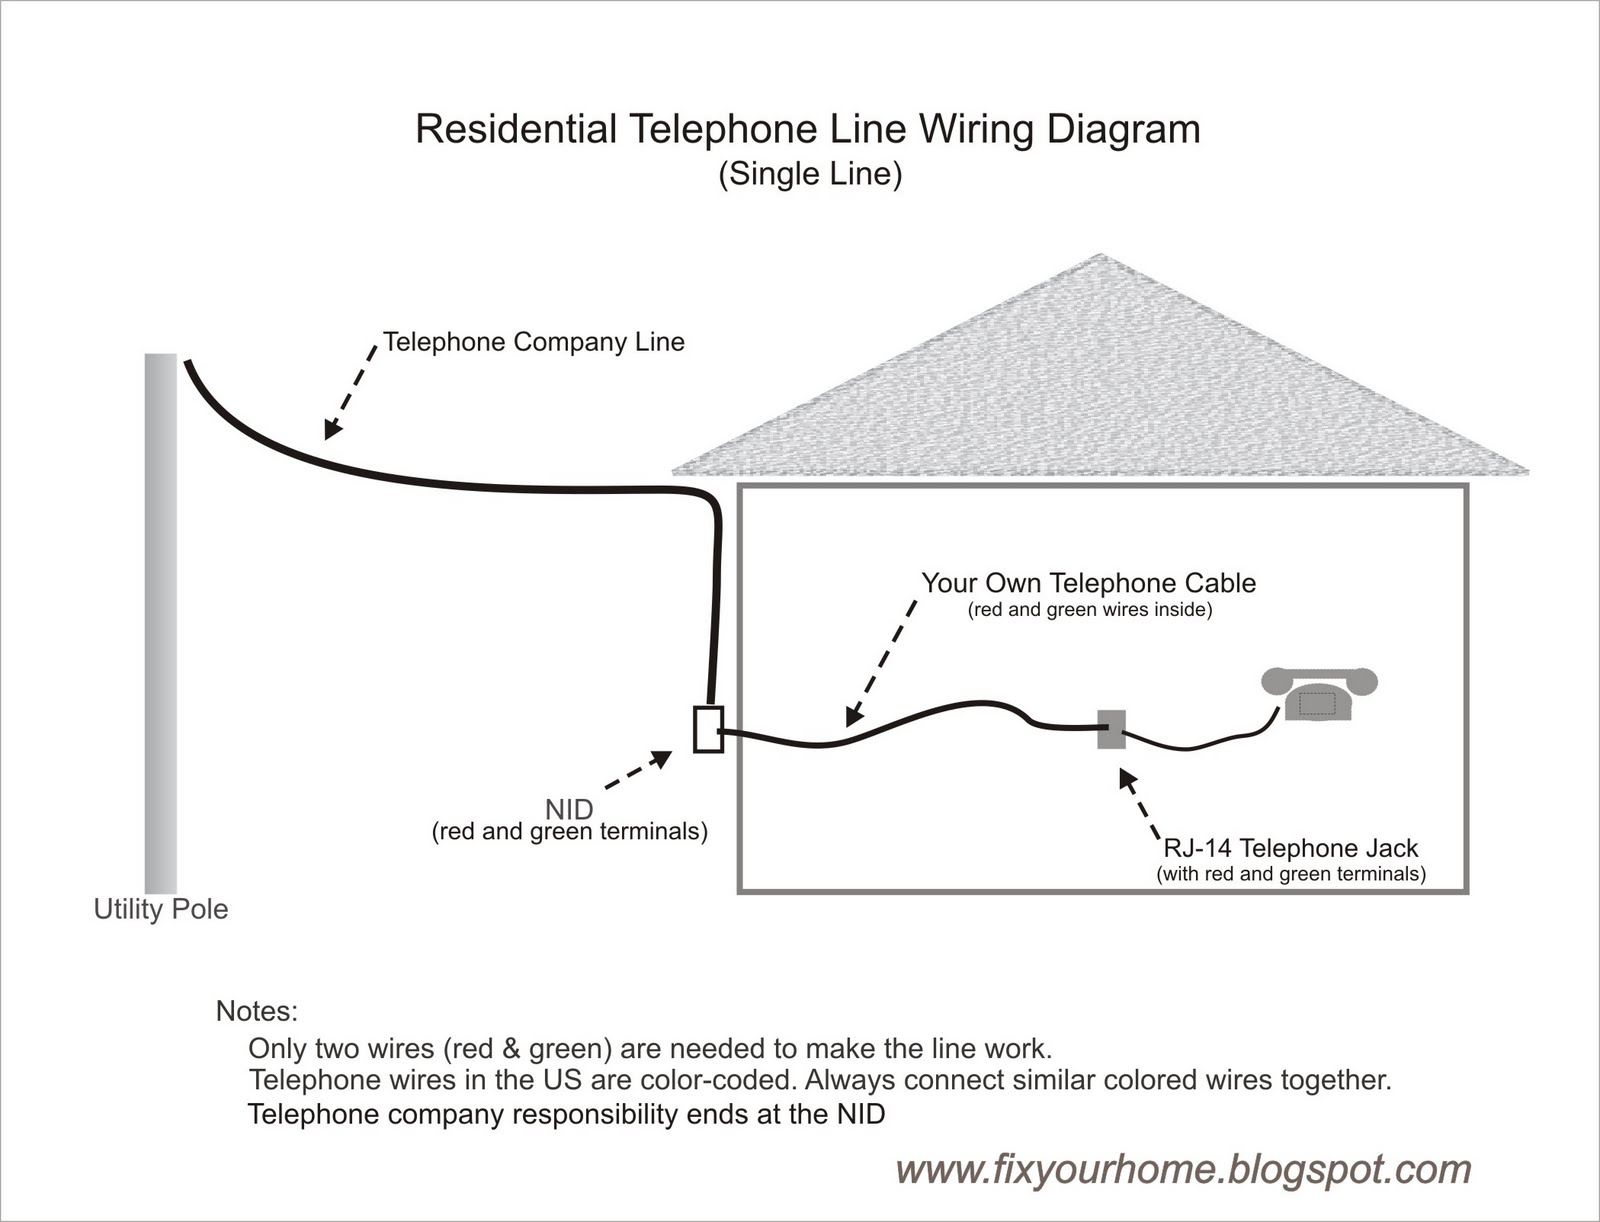 fix your home how to wire your own telephone line wiring diagram for line output converter wiring diagram for two line phone jack [ 1600 x 1222 Pixel ]